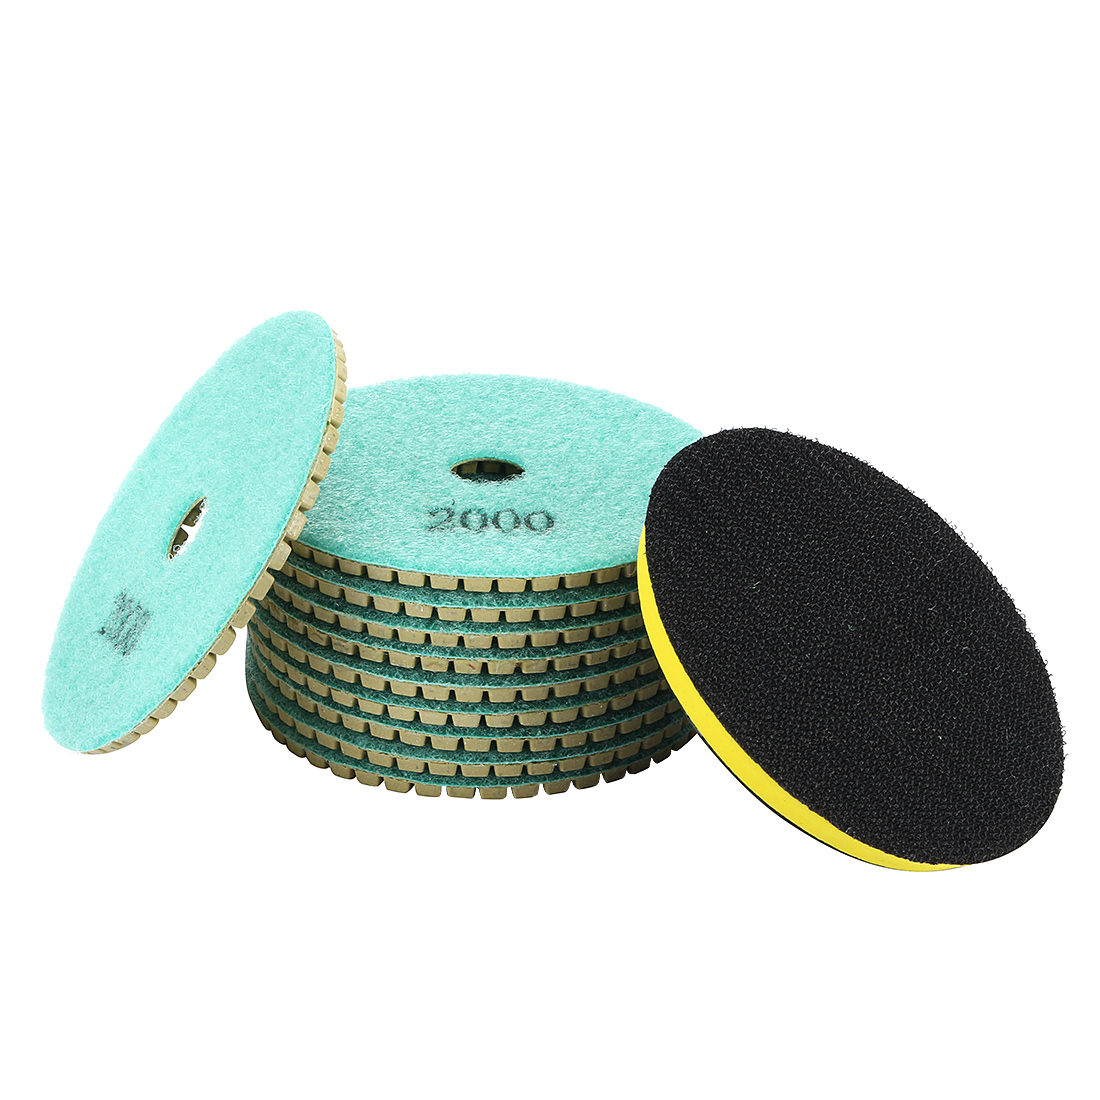 "4"" Diamond Wet Polishing Pad Disc Grit 2000 10pcs for Granite Concrete Marble"